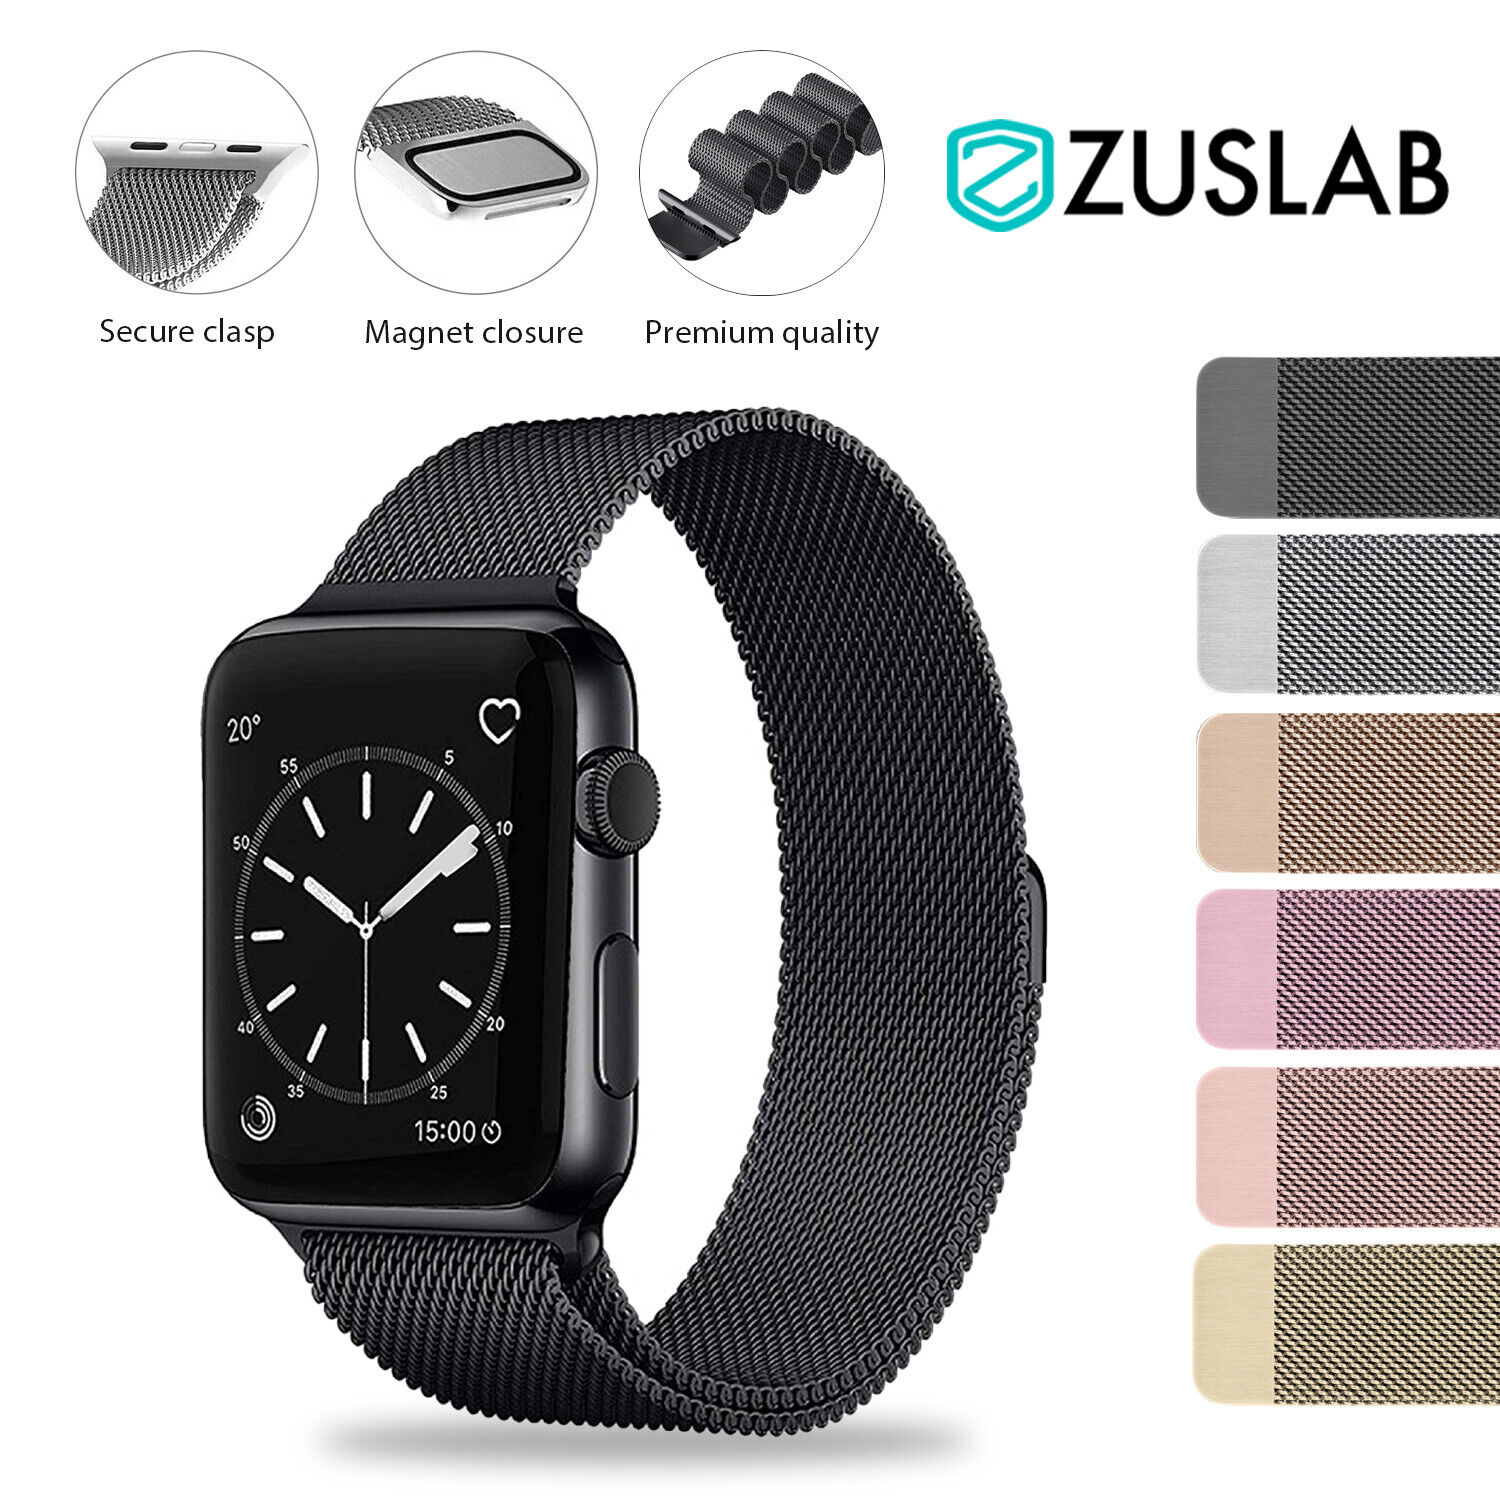 Jewellery - For Apple Watch iWatch Band Series 6 5 4 3 2 1 SE Magnetic Stainless Steel Strap